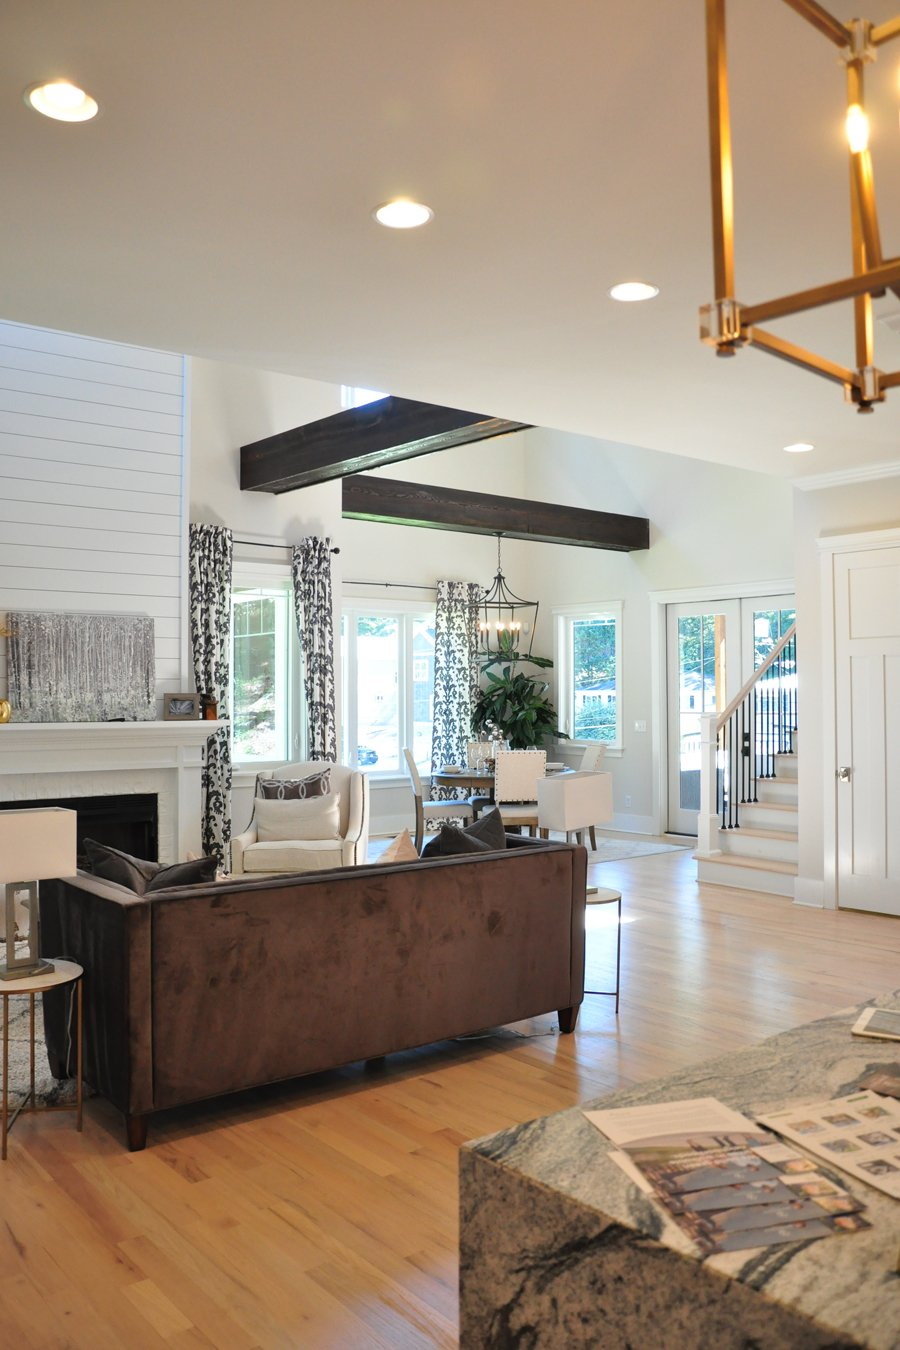 2018 Chattanooga Showcase of Homes Highlights